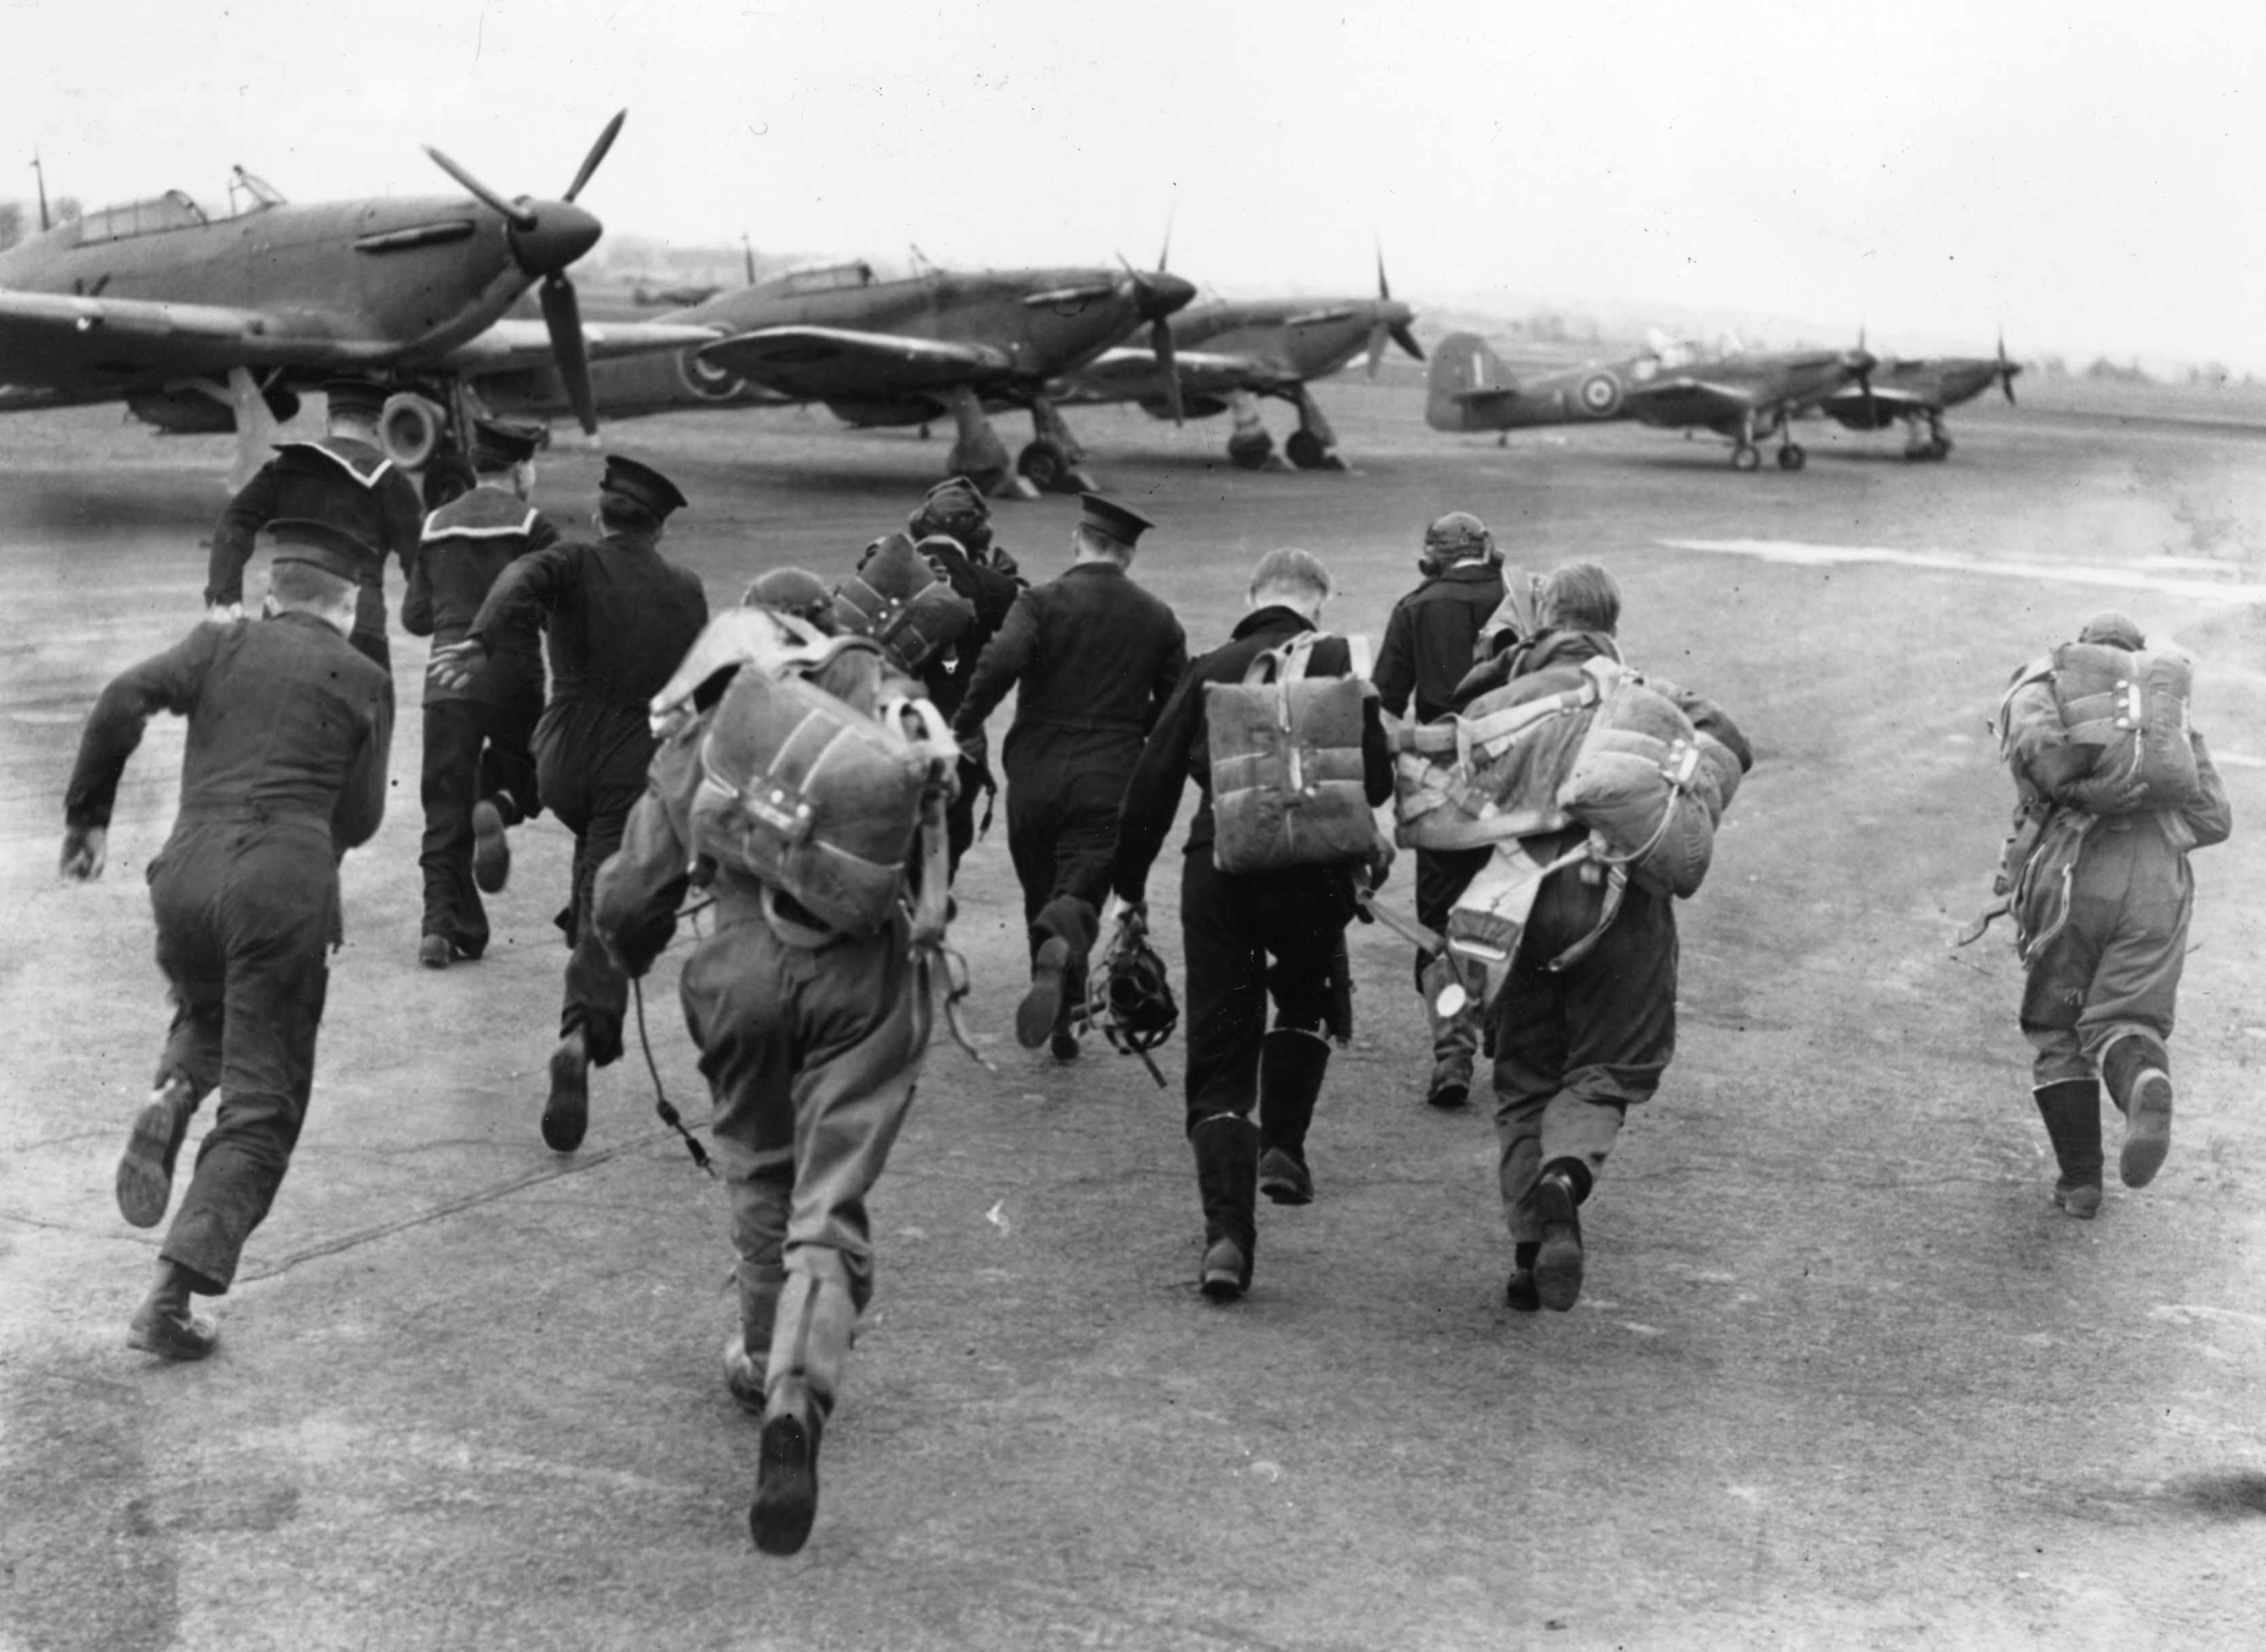 1943: A group of RAF pilots and sailors scramble for their planes during an alert at a training centre for the Fleet Air Arm. (Photo by Keystone/Getty Images)